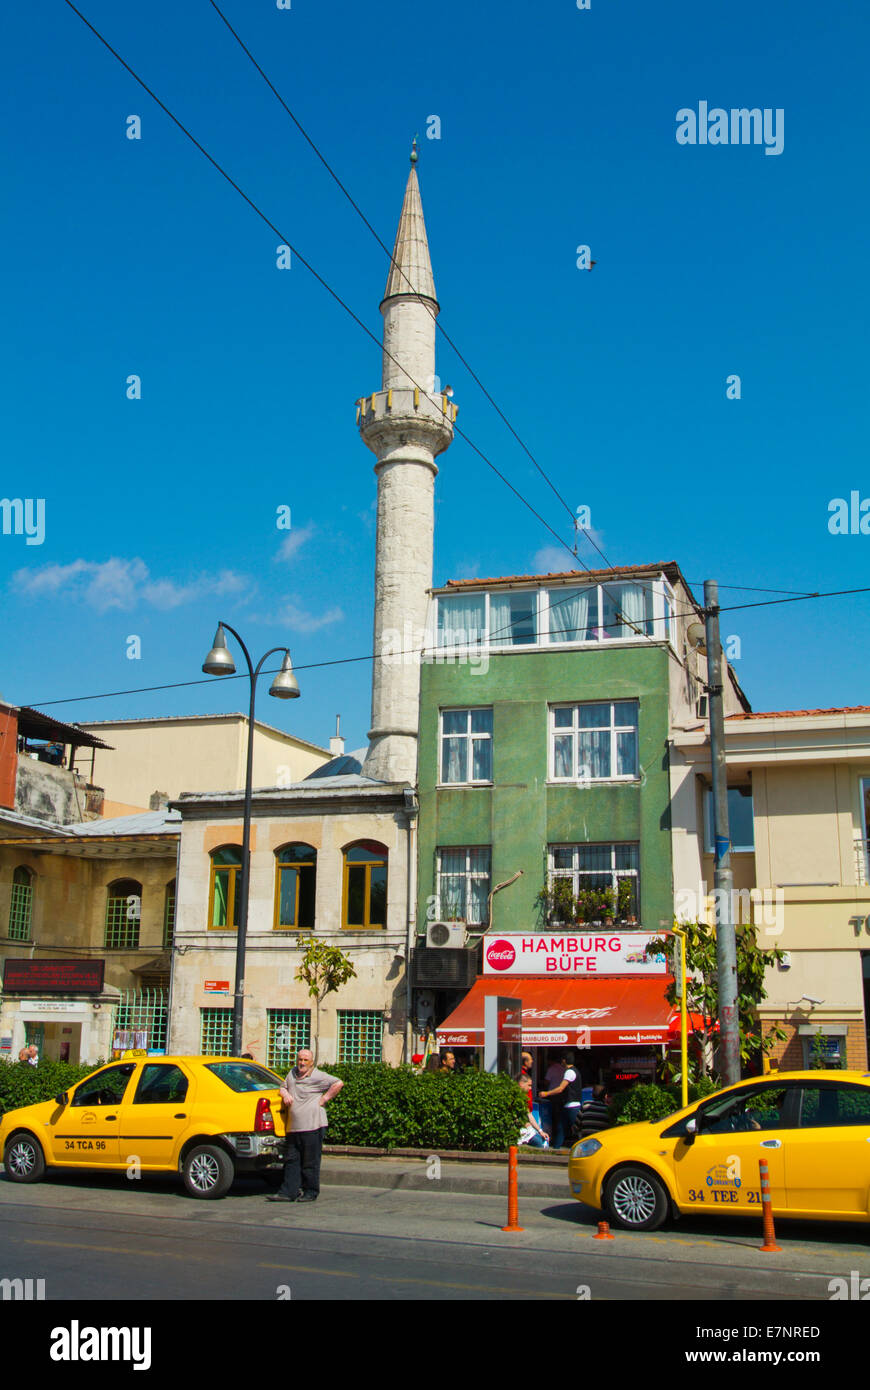 Minaret of Iskele Camii mosque and taxis, Kadiköy district on Asian side, Istanbul, Turkey, Asia Minor - Stock Image